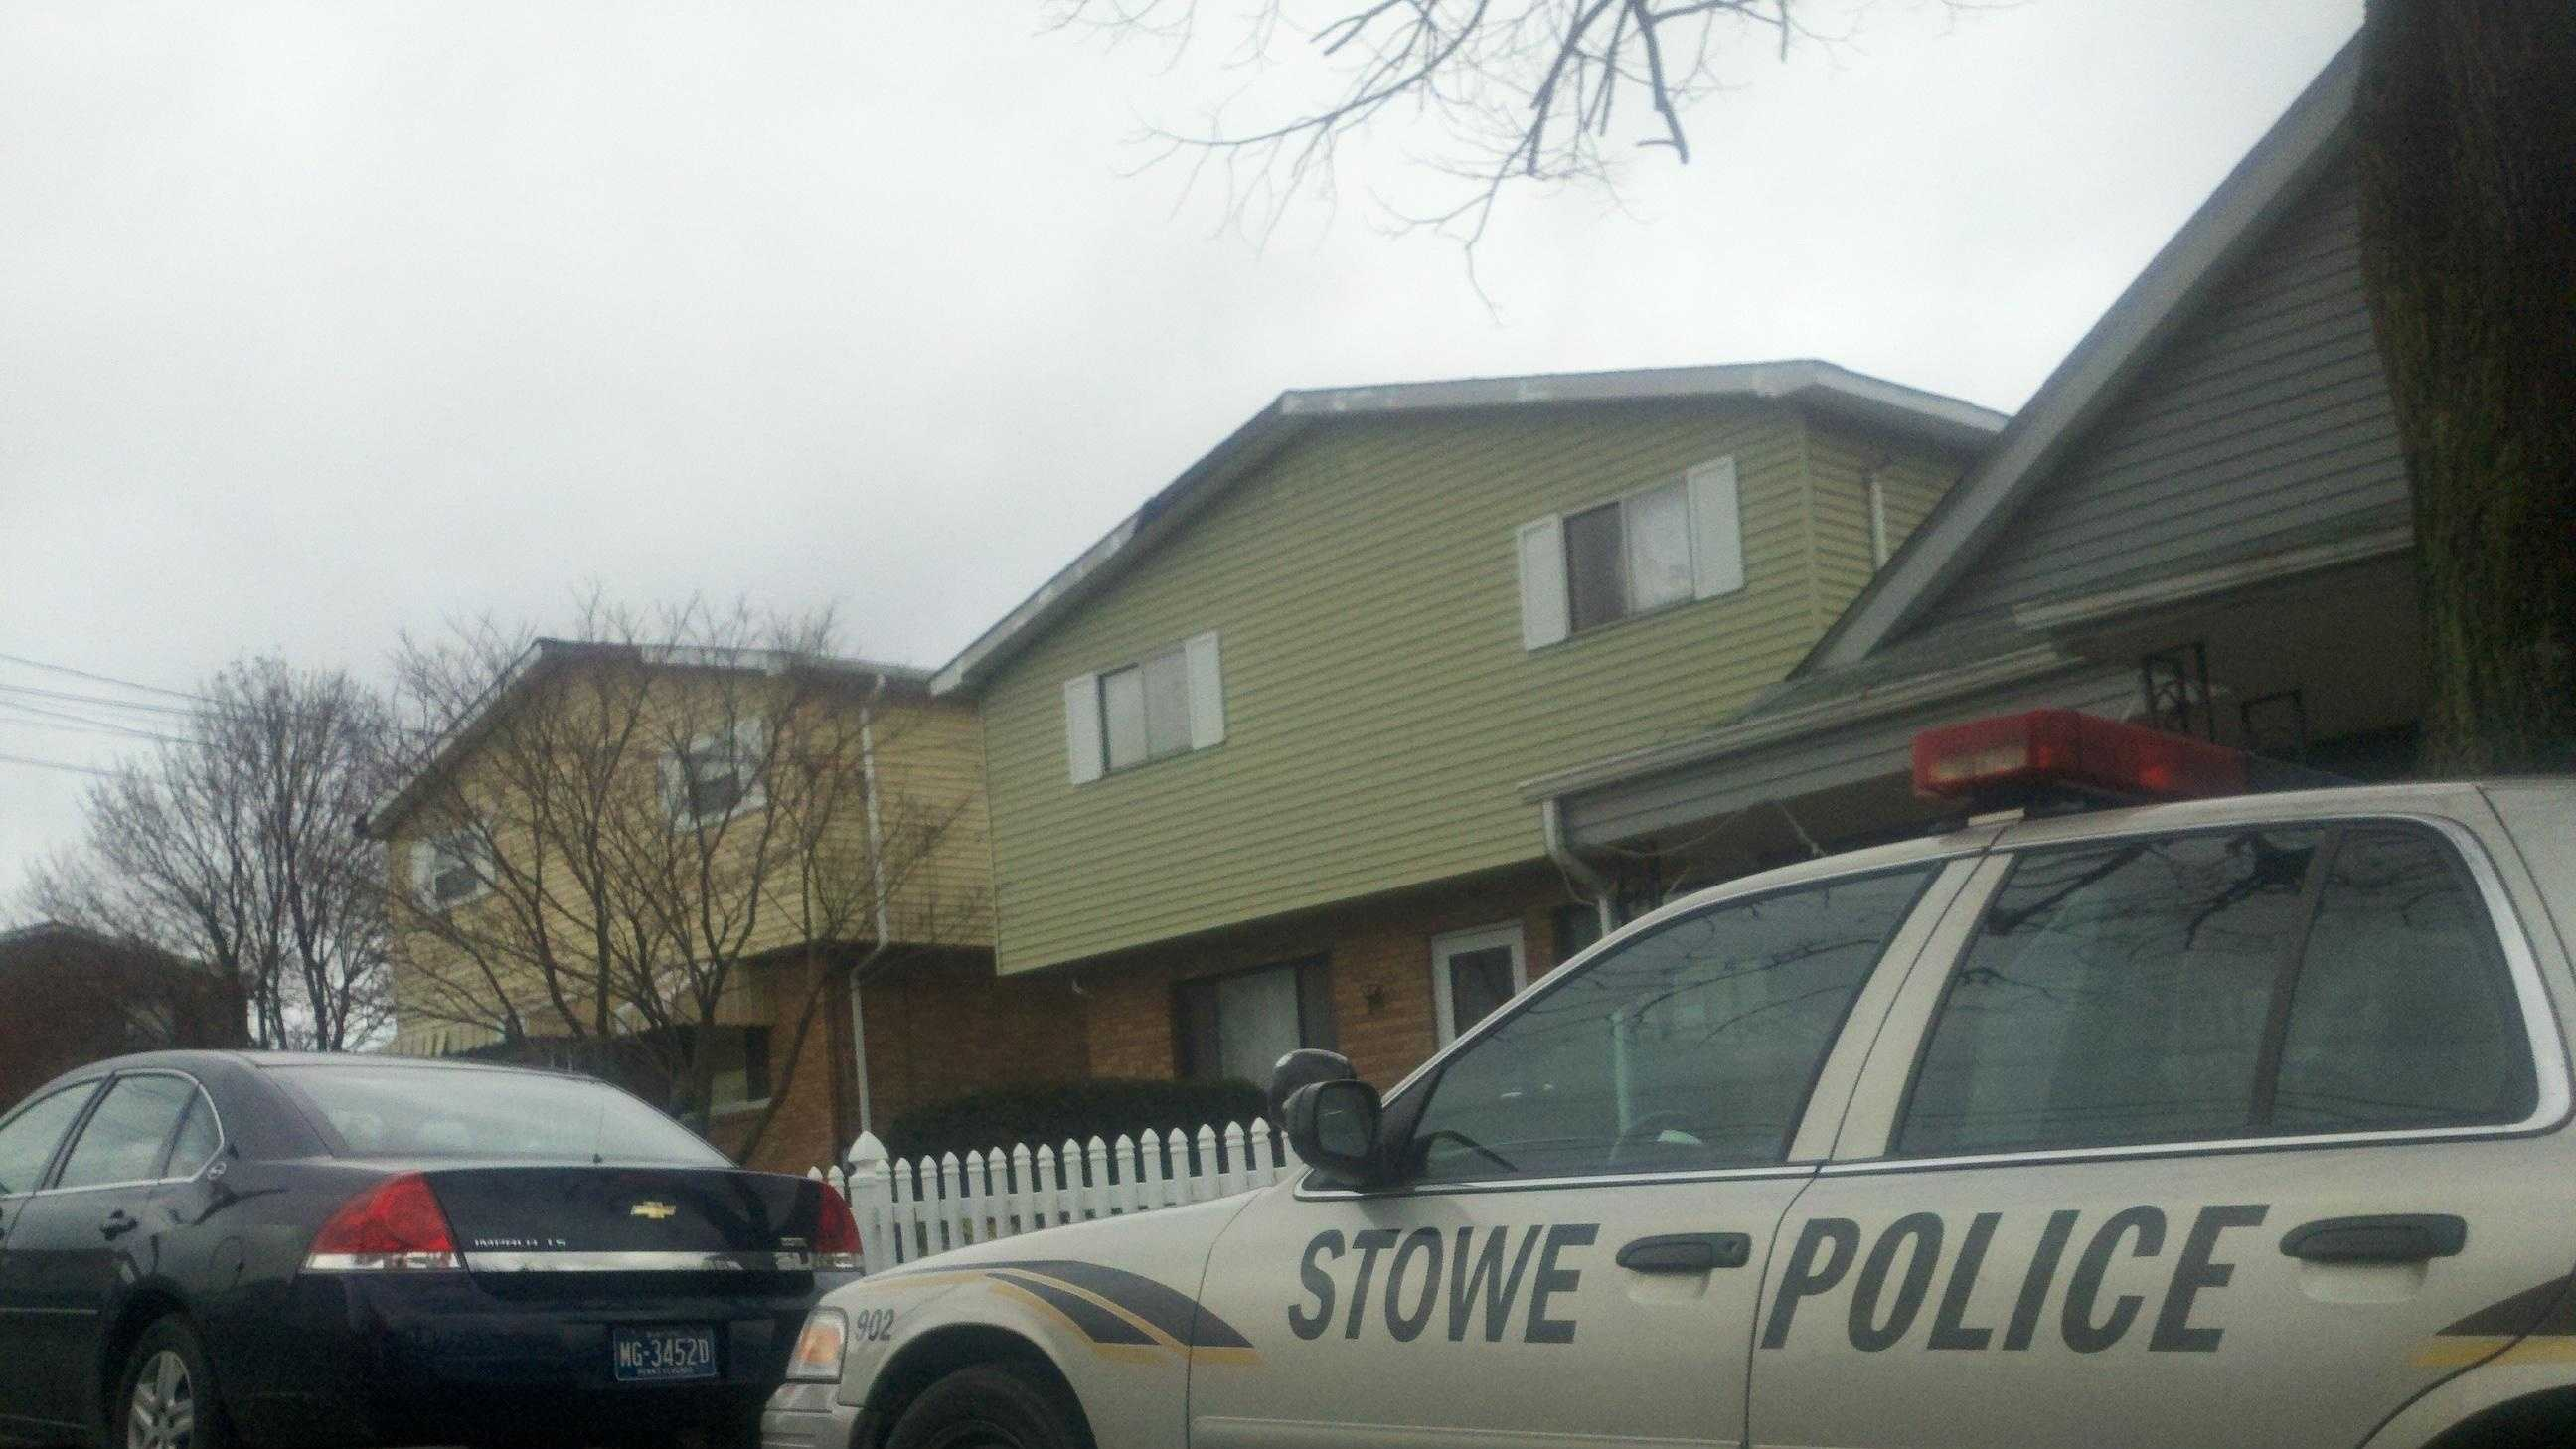 Stowe Township police